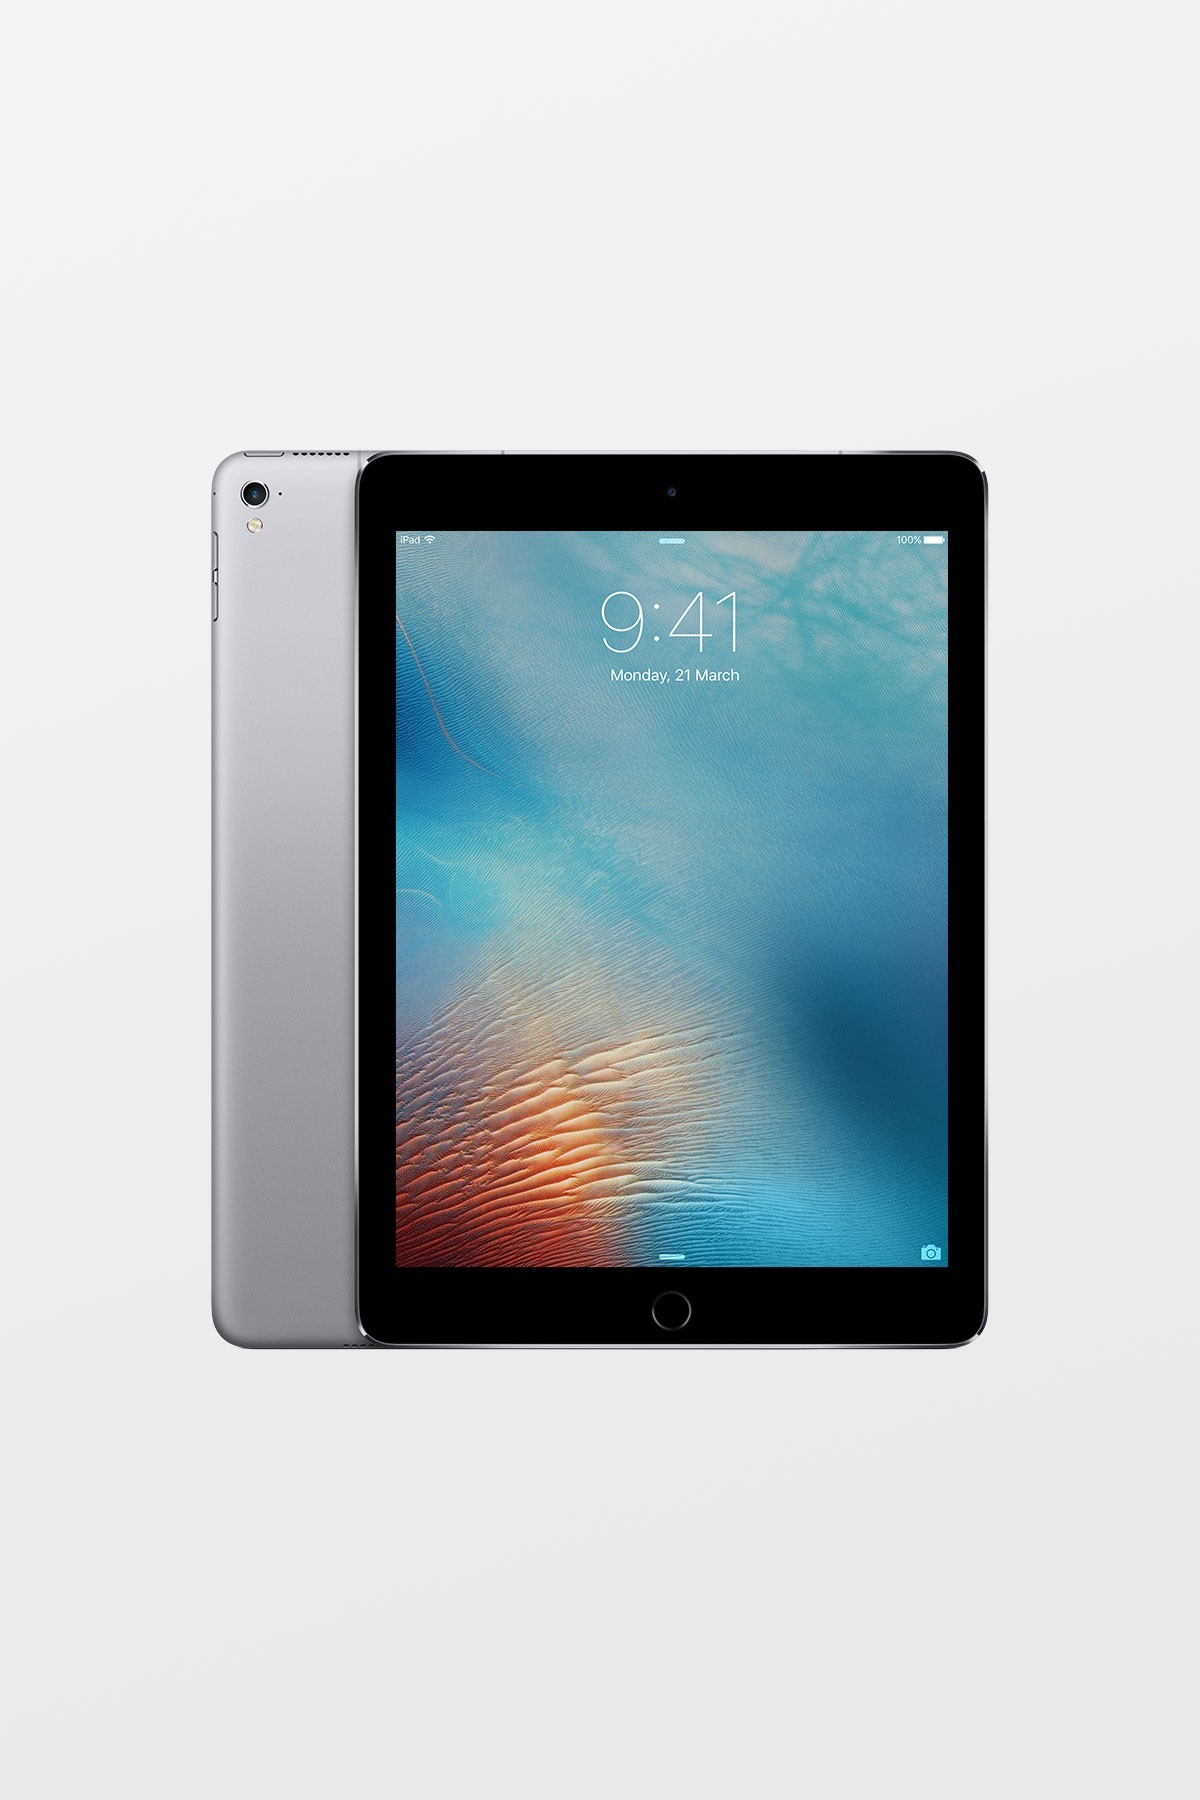 Apple iPad Pro 9.7-inch Wi-Fi Cellular 256GB - Space Grey - Refurbished